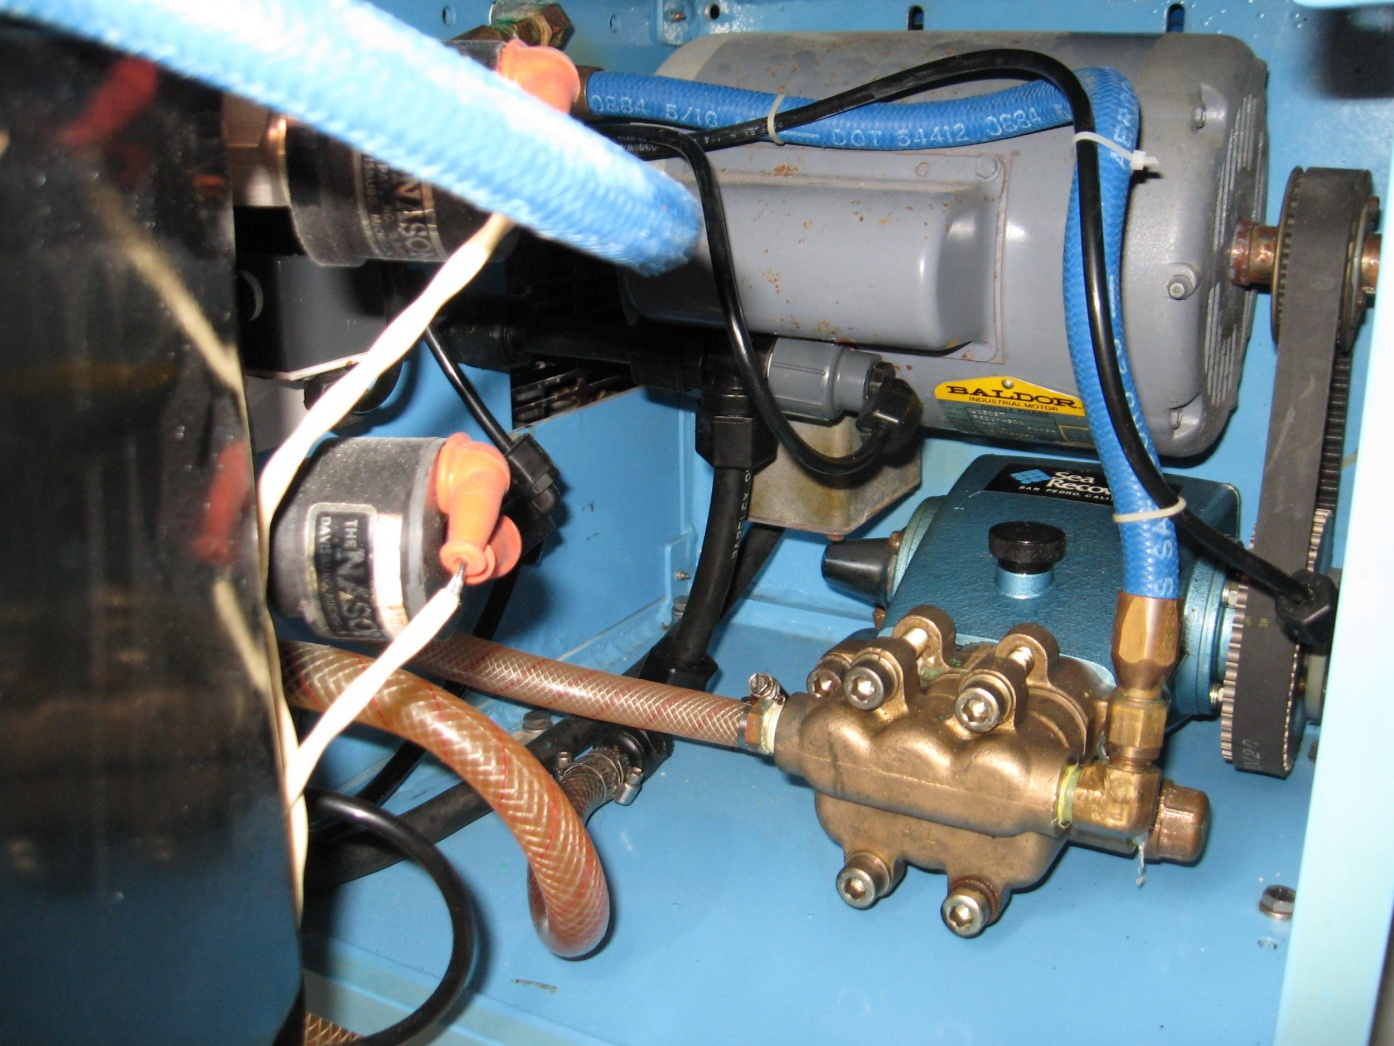 Click image for larger version  Name:Watermaker1.jpg Views:77 Size:425.4 KB ID:20445